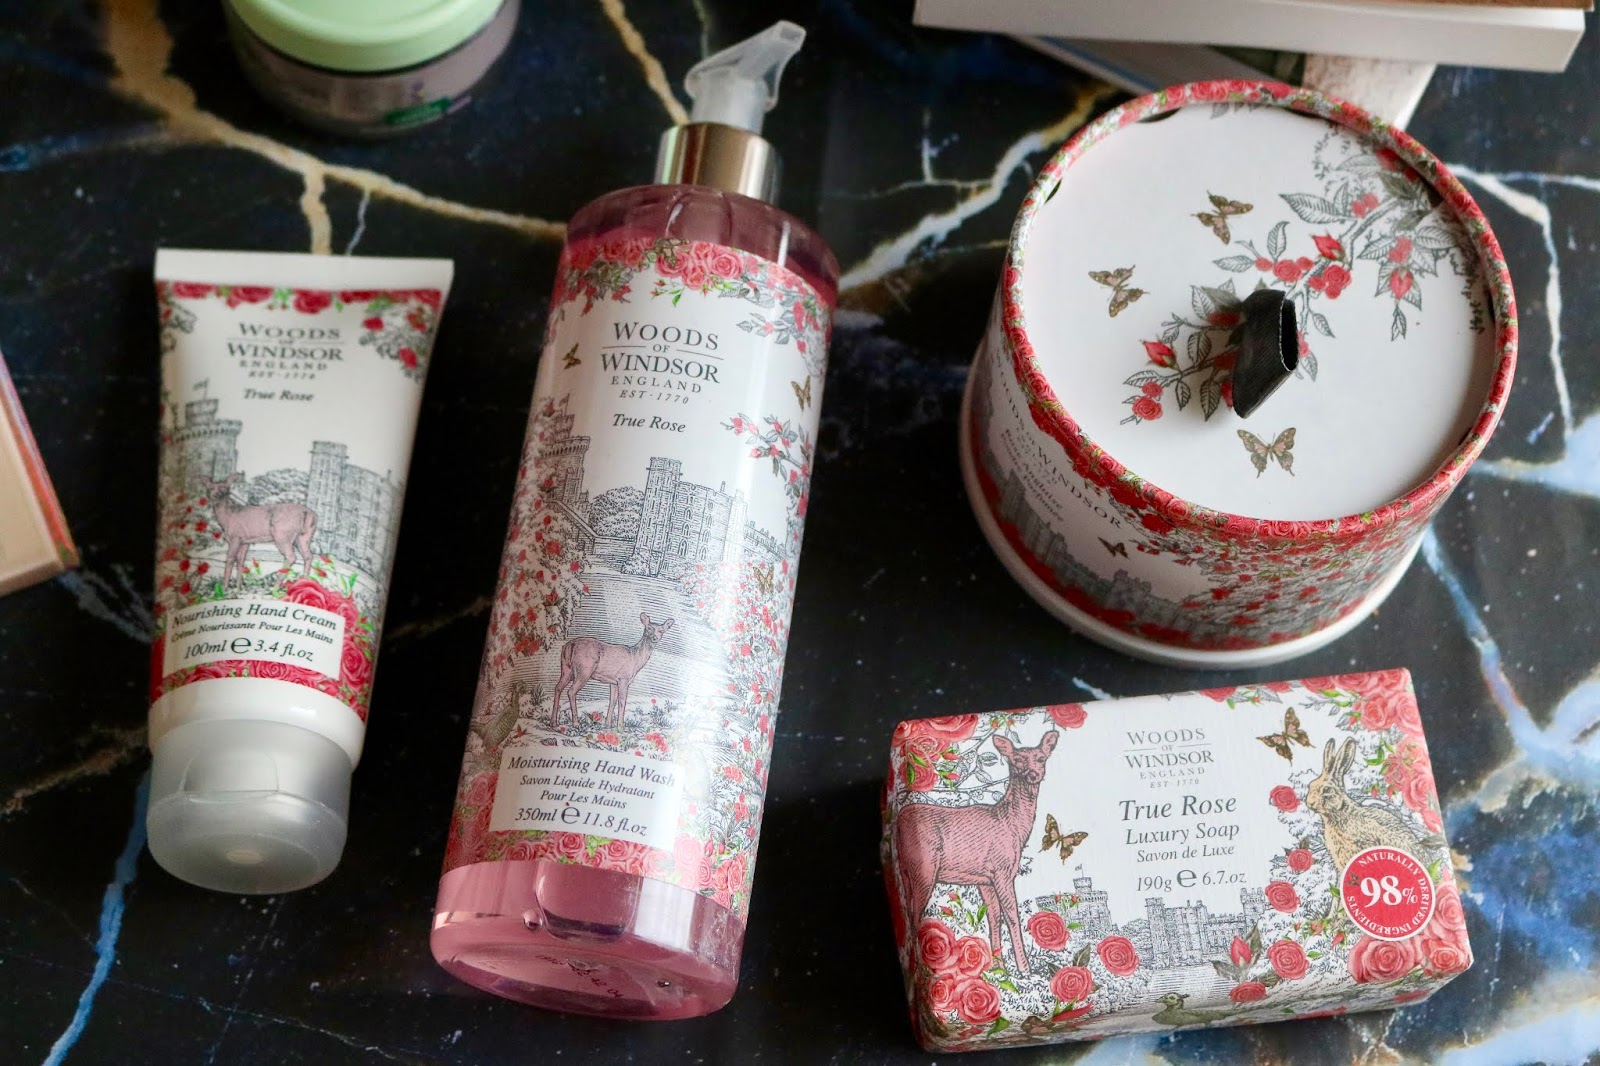 WOODS OF WINDSOR TRUE ROSE HAND WASH £4.66, SOAP £3.33, HAND CREAM £6.66 AND DUSTING POWDER